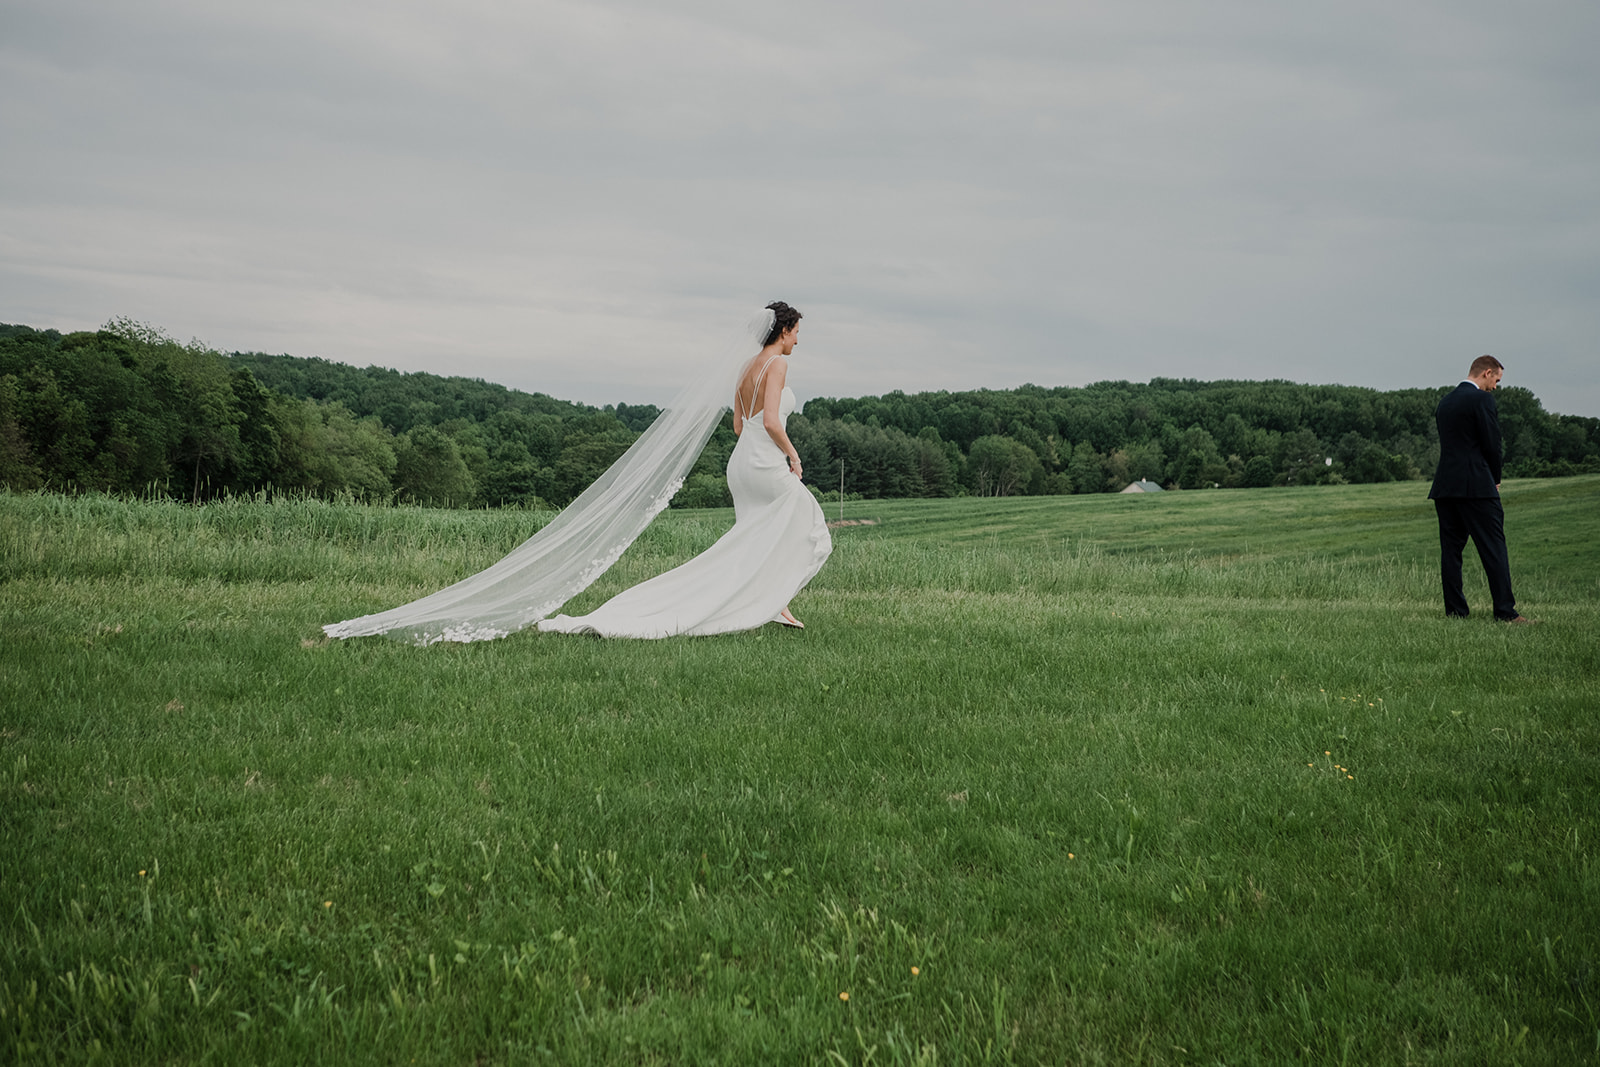 A bride with a long veil walks through a field towards her groom for a first look before their outdoor wedding ceremony at Blue Hill Farm in Waterford, VA.